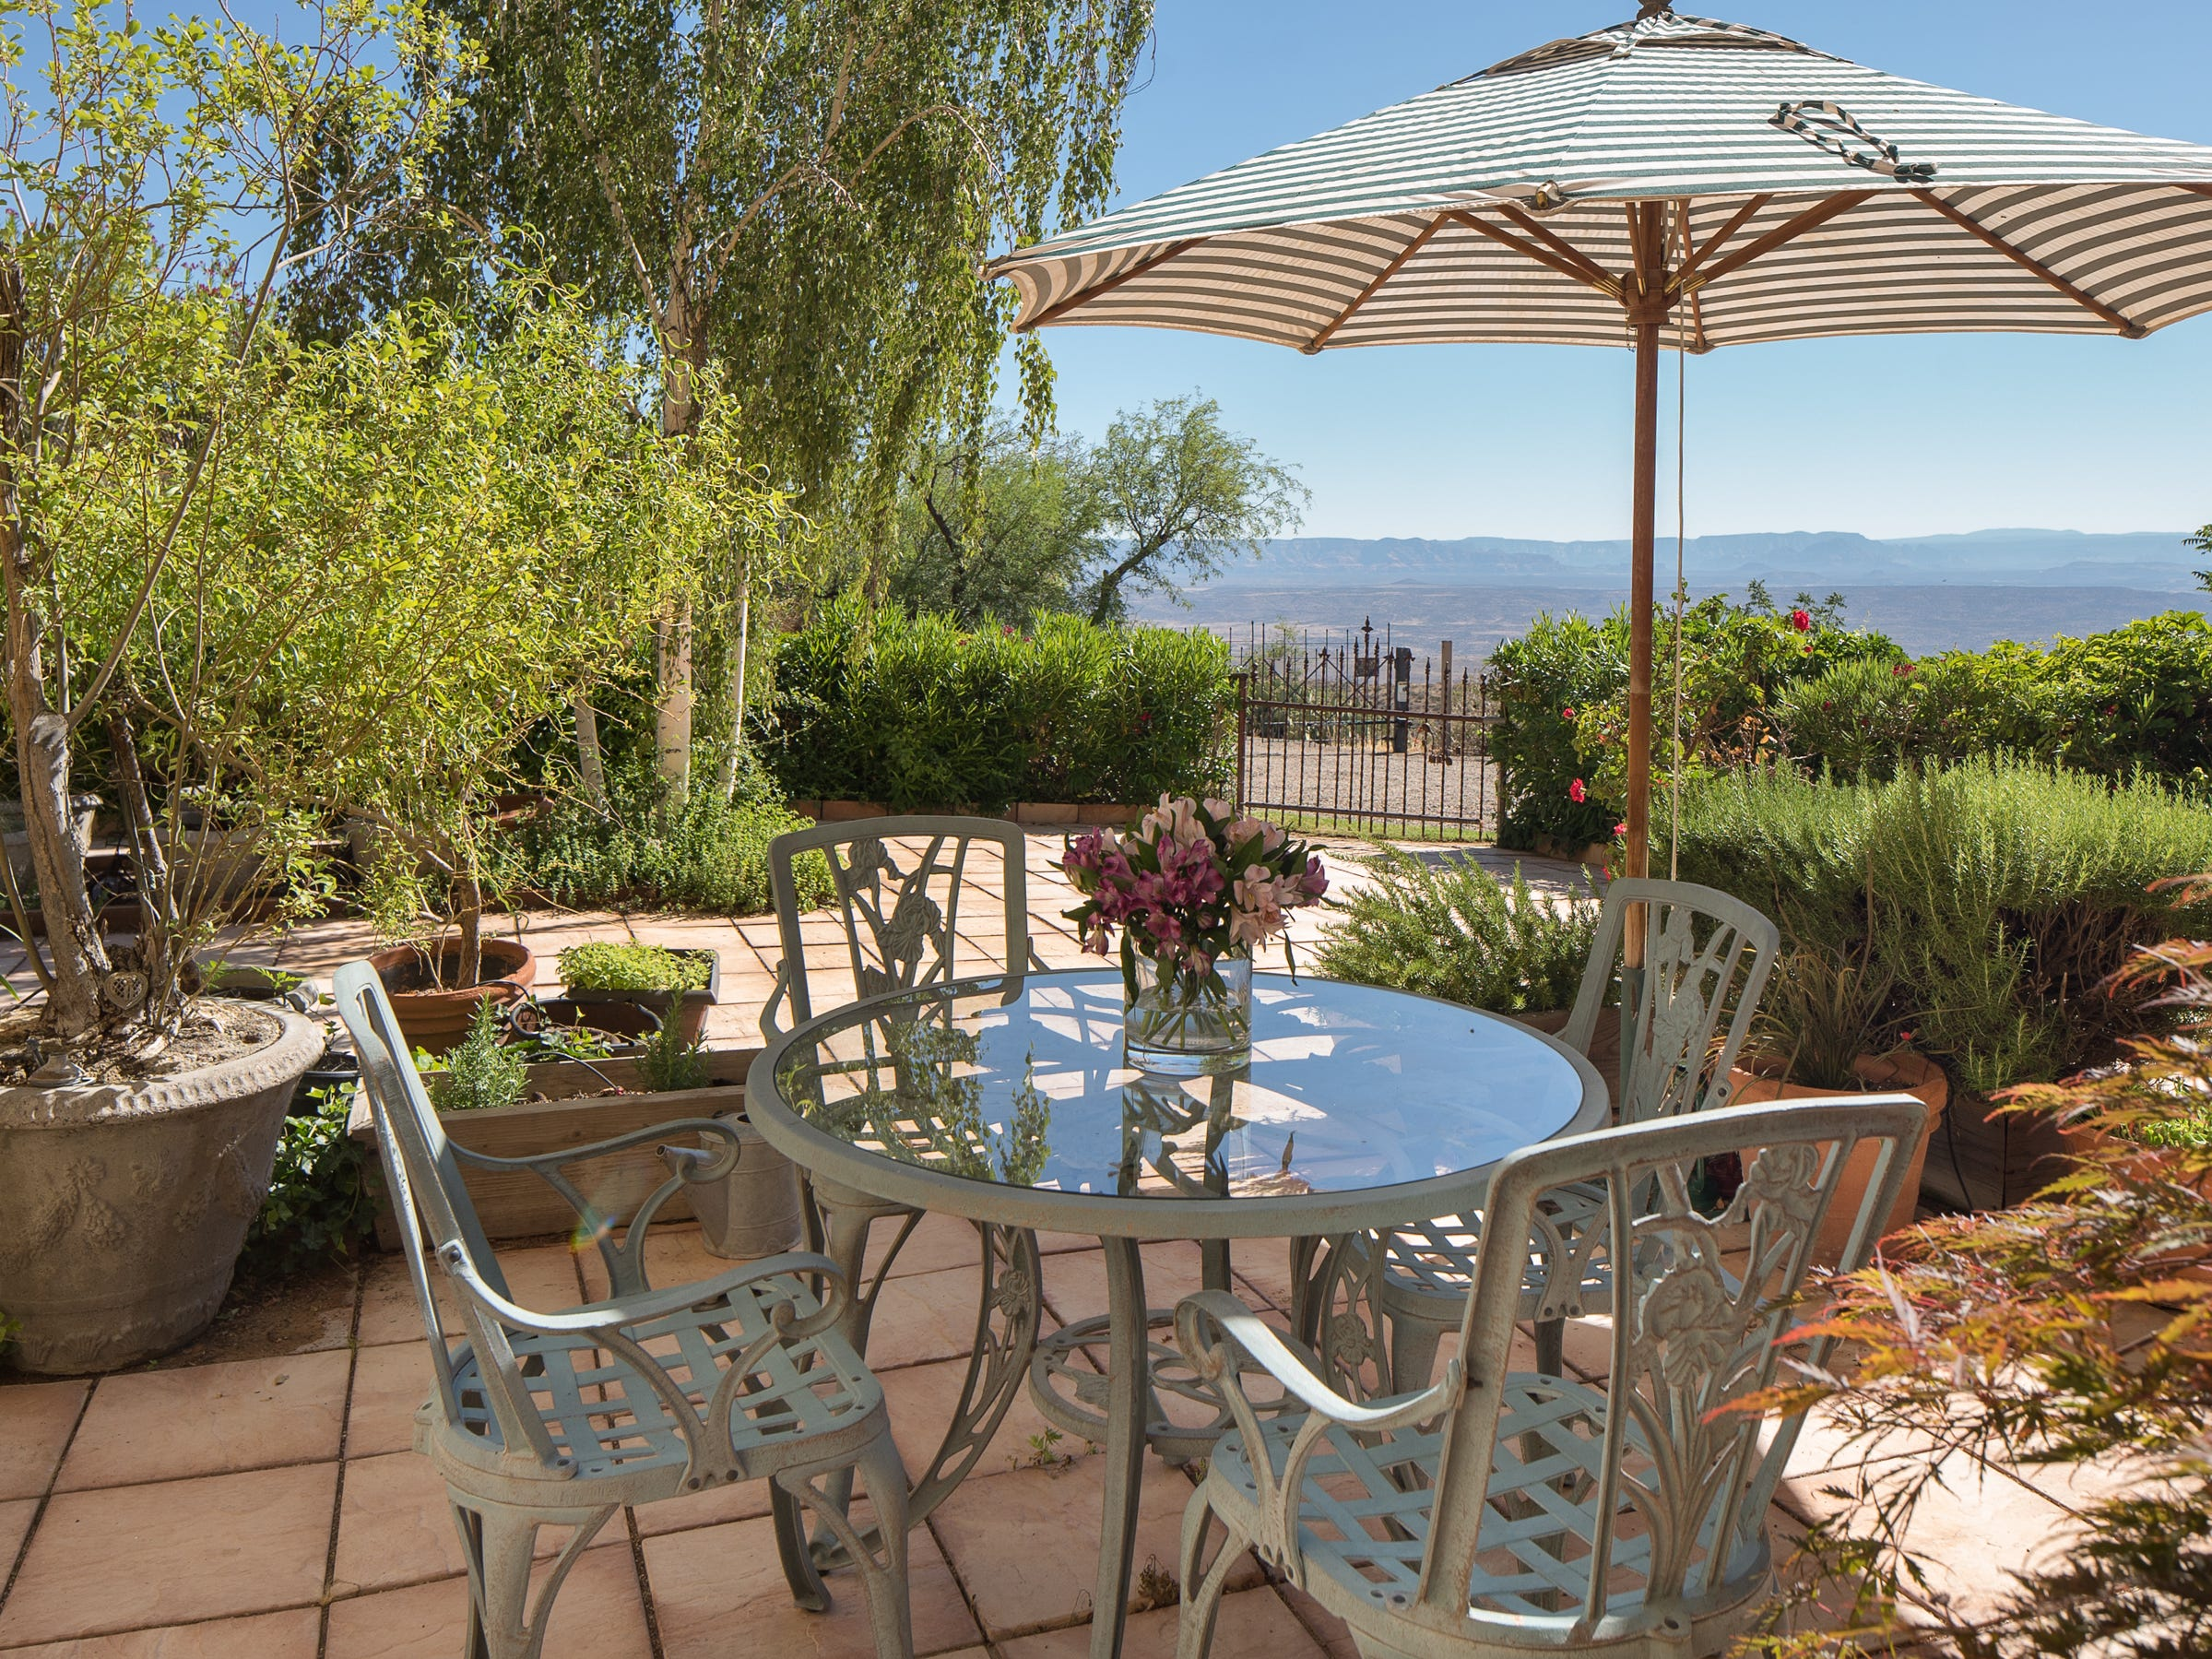 The patio off the kitchen is seen at the 100-year-old former Little Daisy Hotel in Jerome, which was later turned into a single-family home and is now on the market.